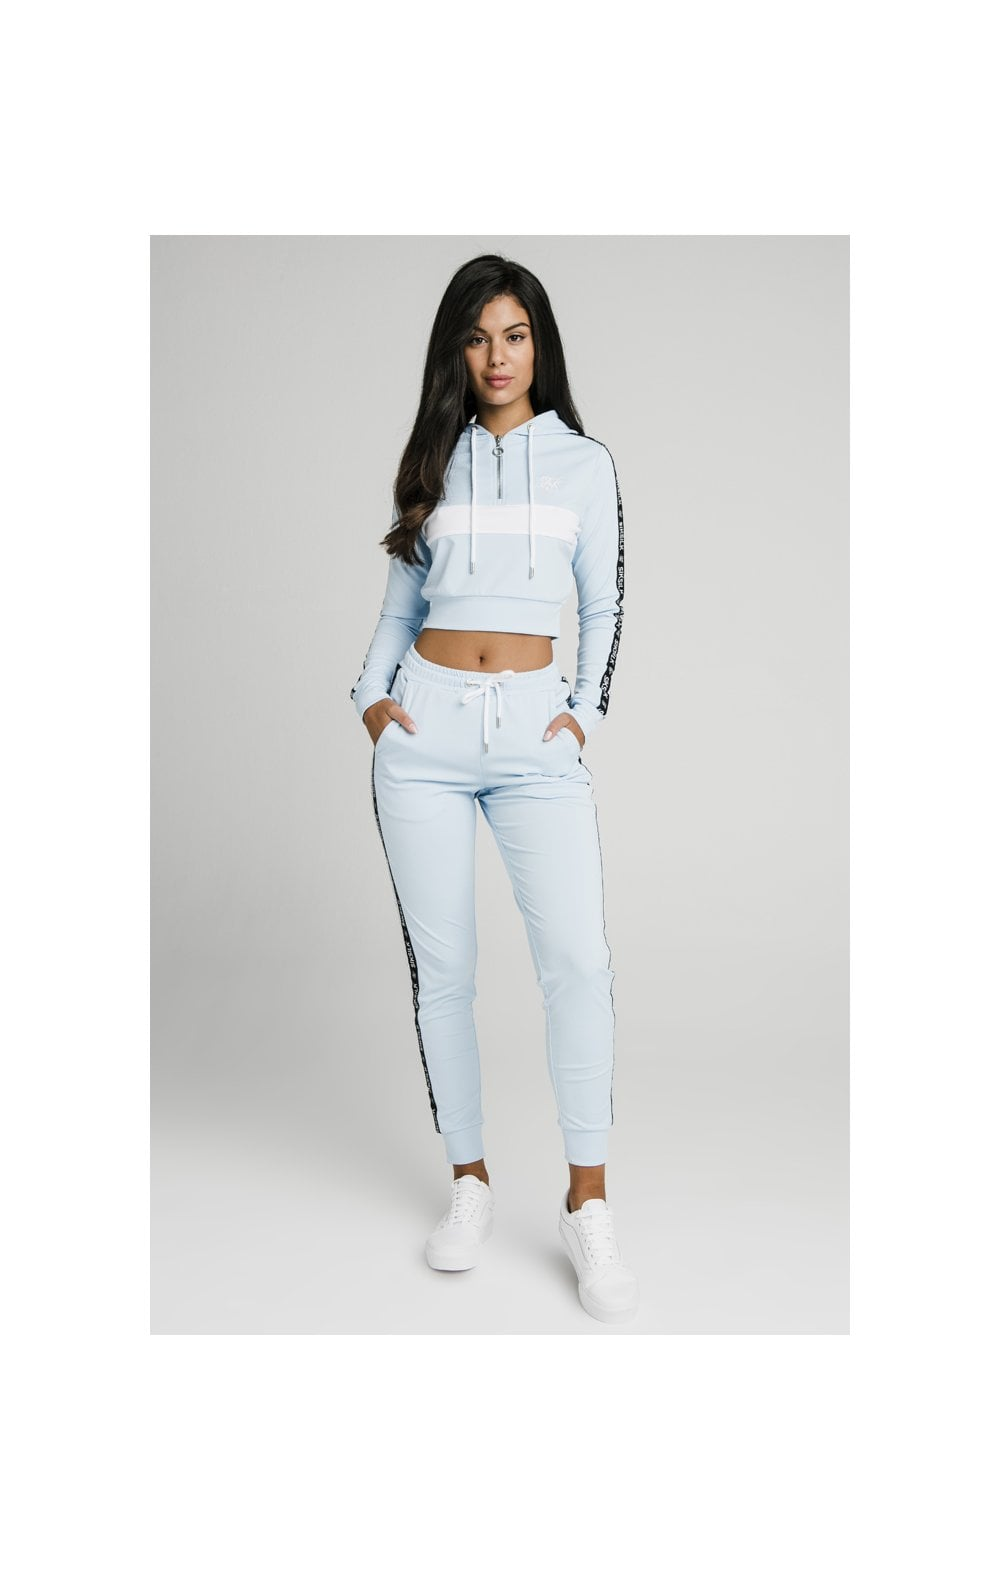 SikSilk Sky Tape Track Top - Light Blue (3)